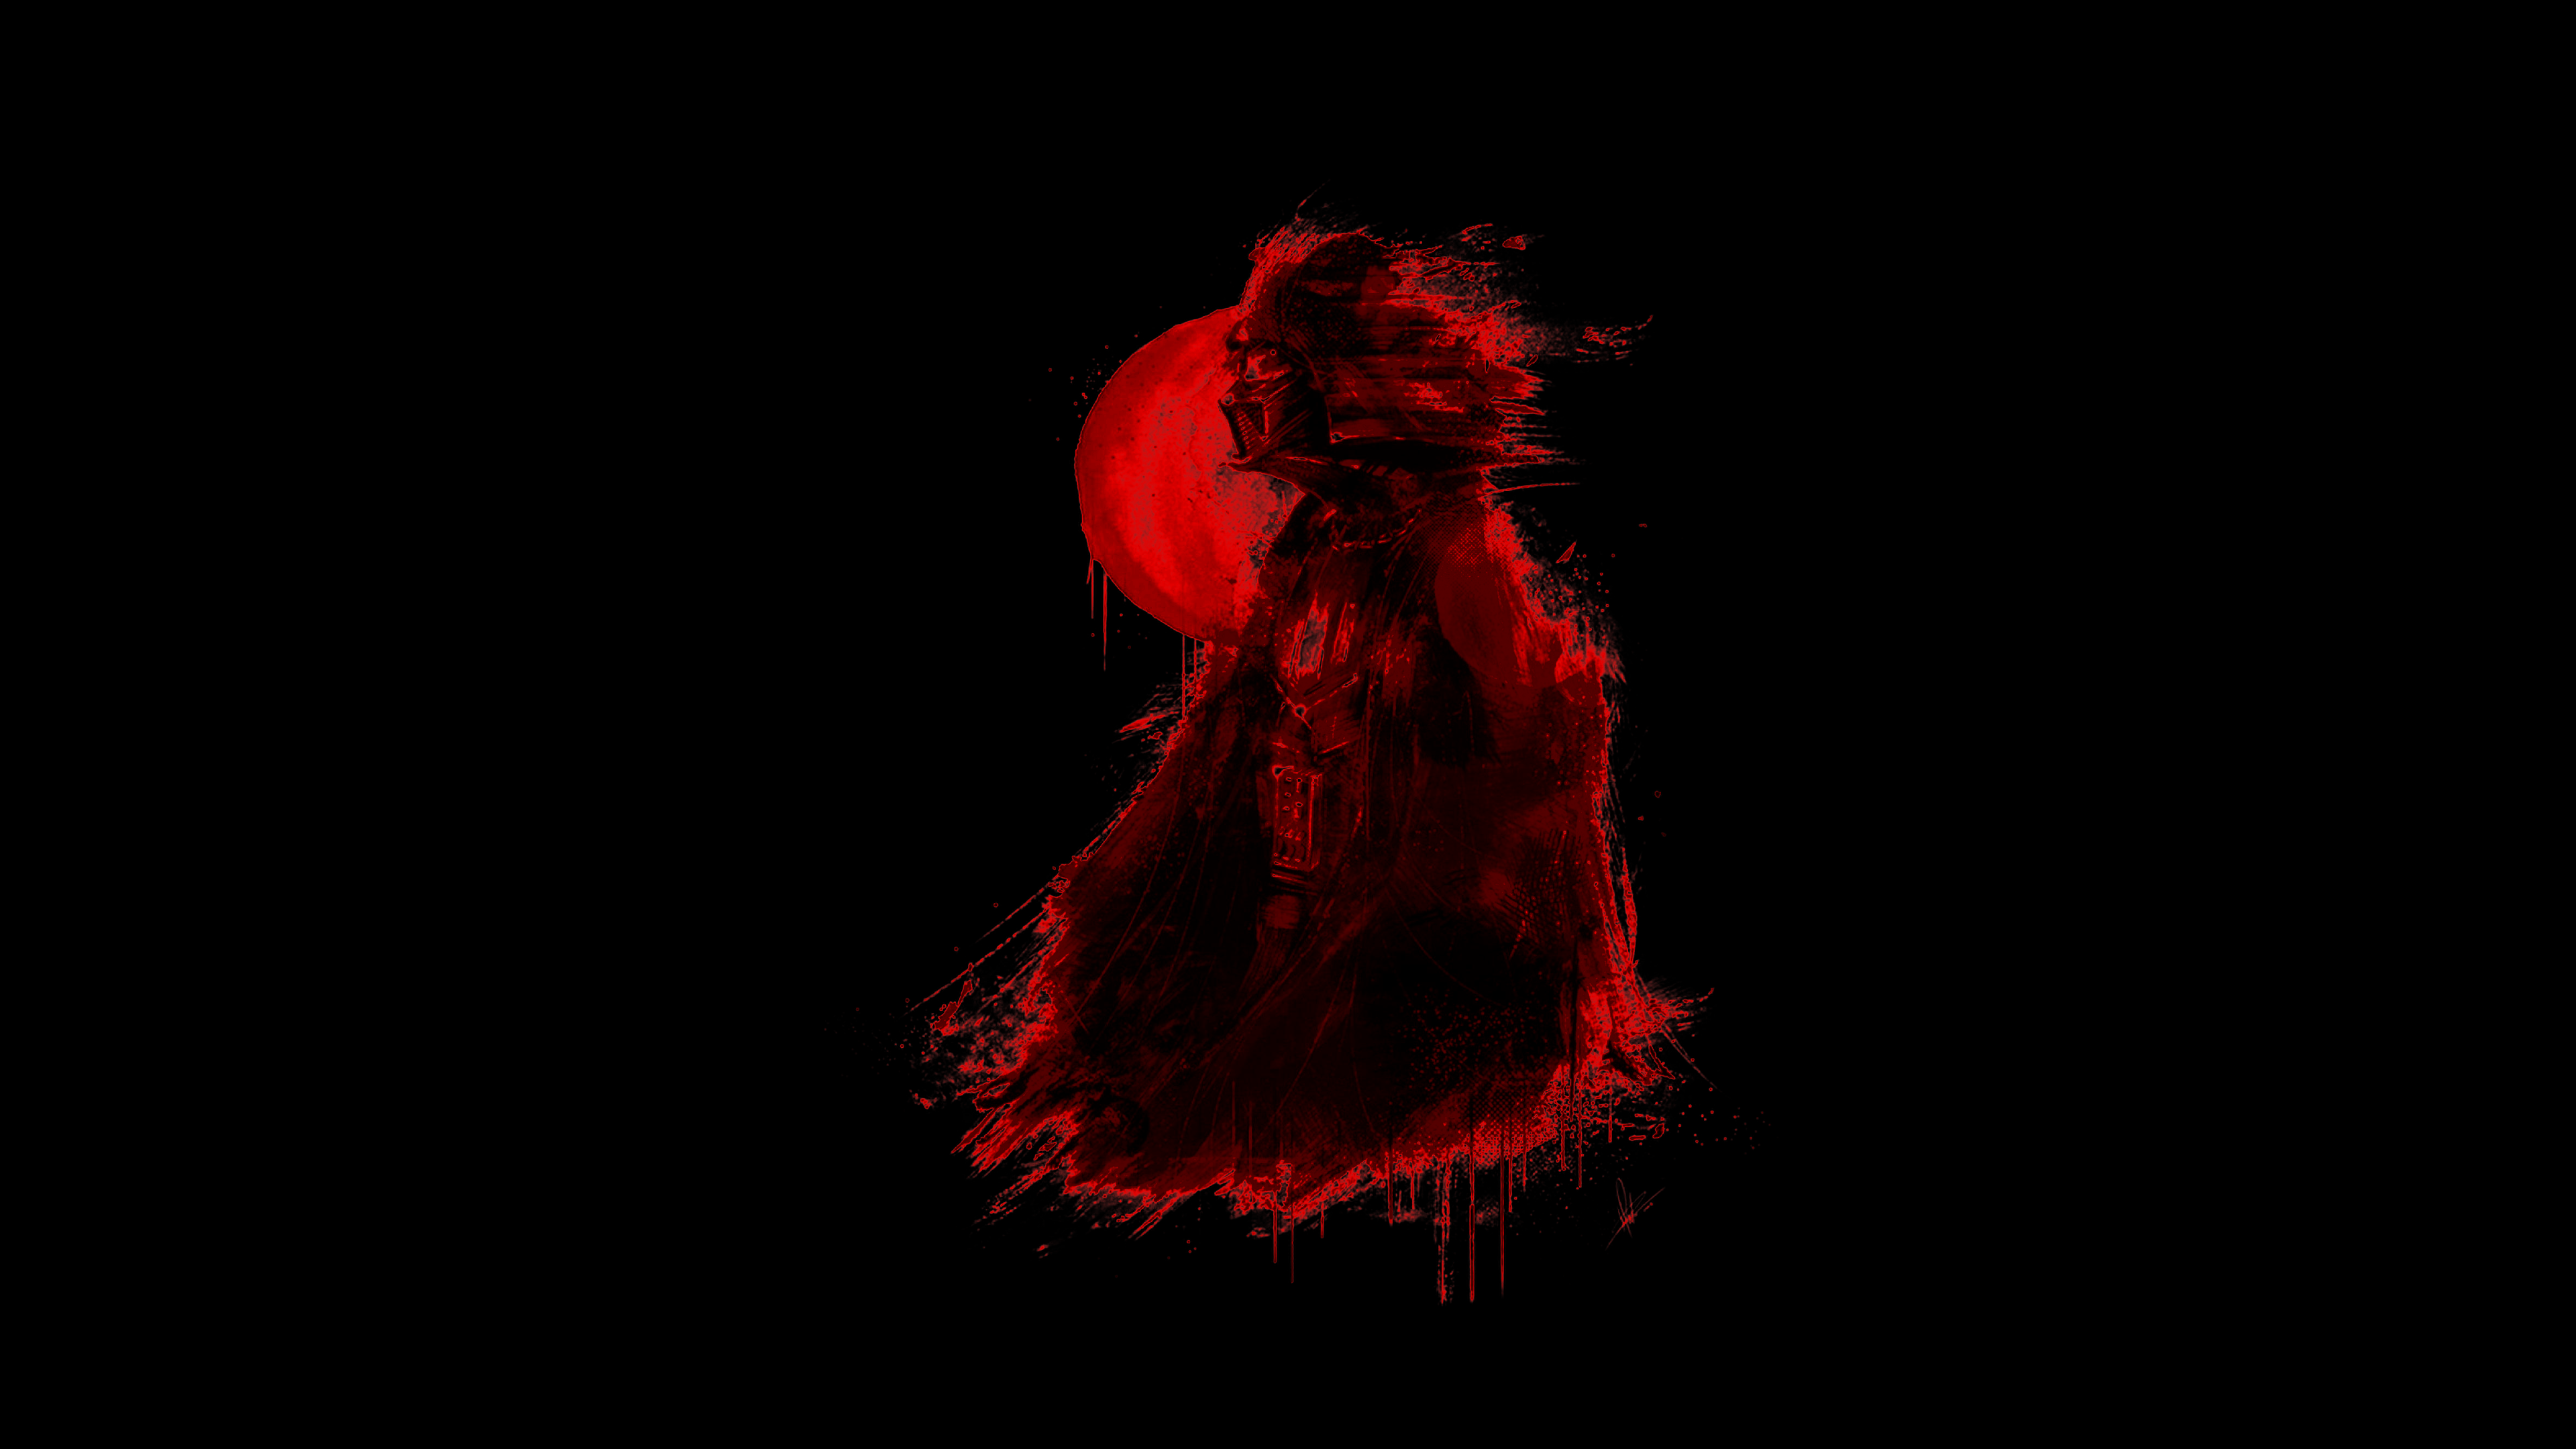 Stylized Red Vader For Black Amoled Screens 3840x2160 Dark Background Wallpaper Joker Iphone Wallpaper Samsung Wallpaper Android